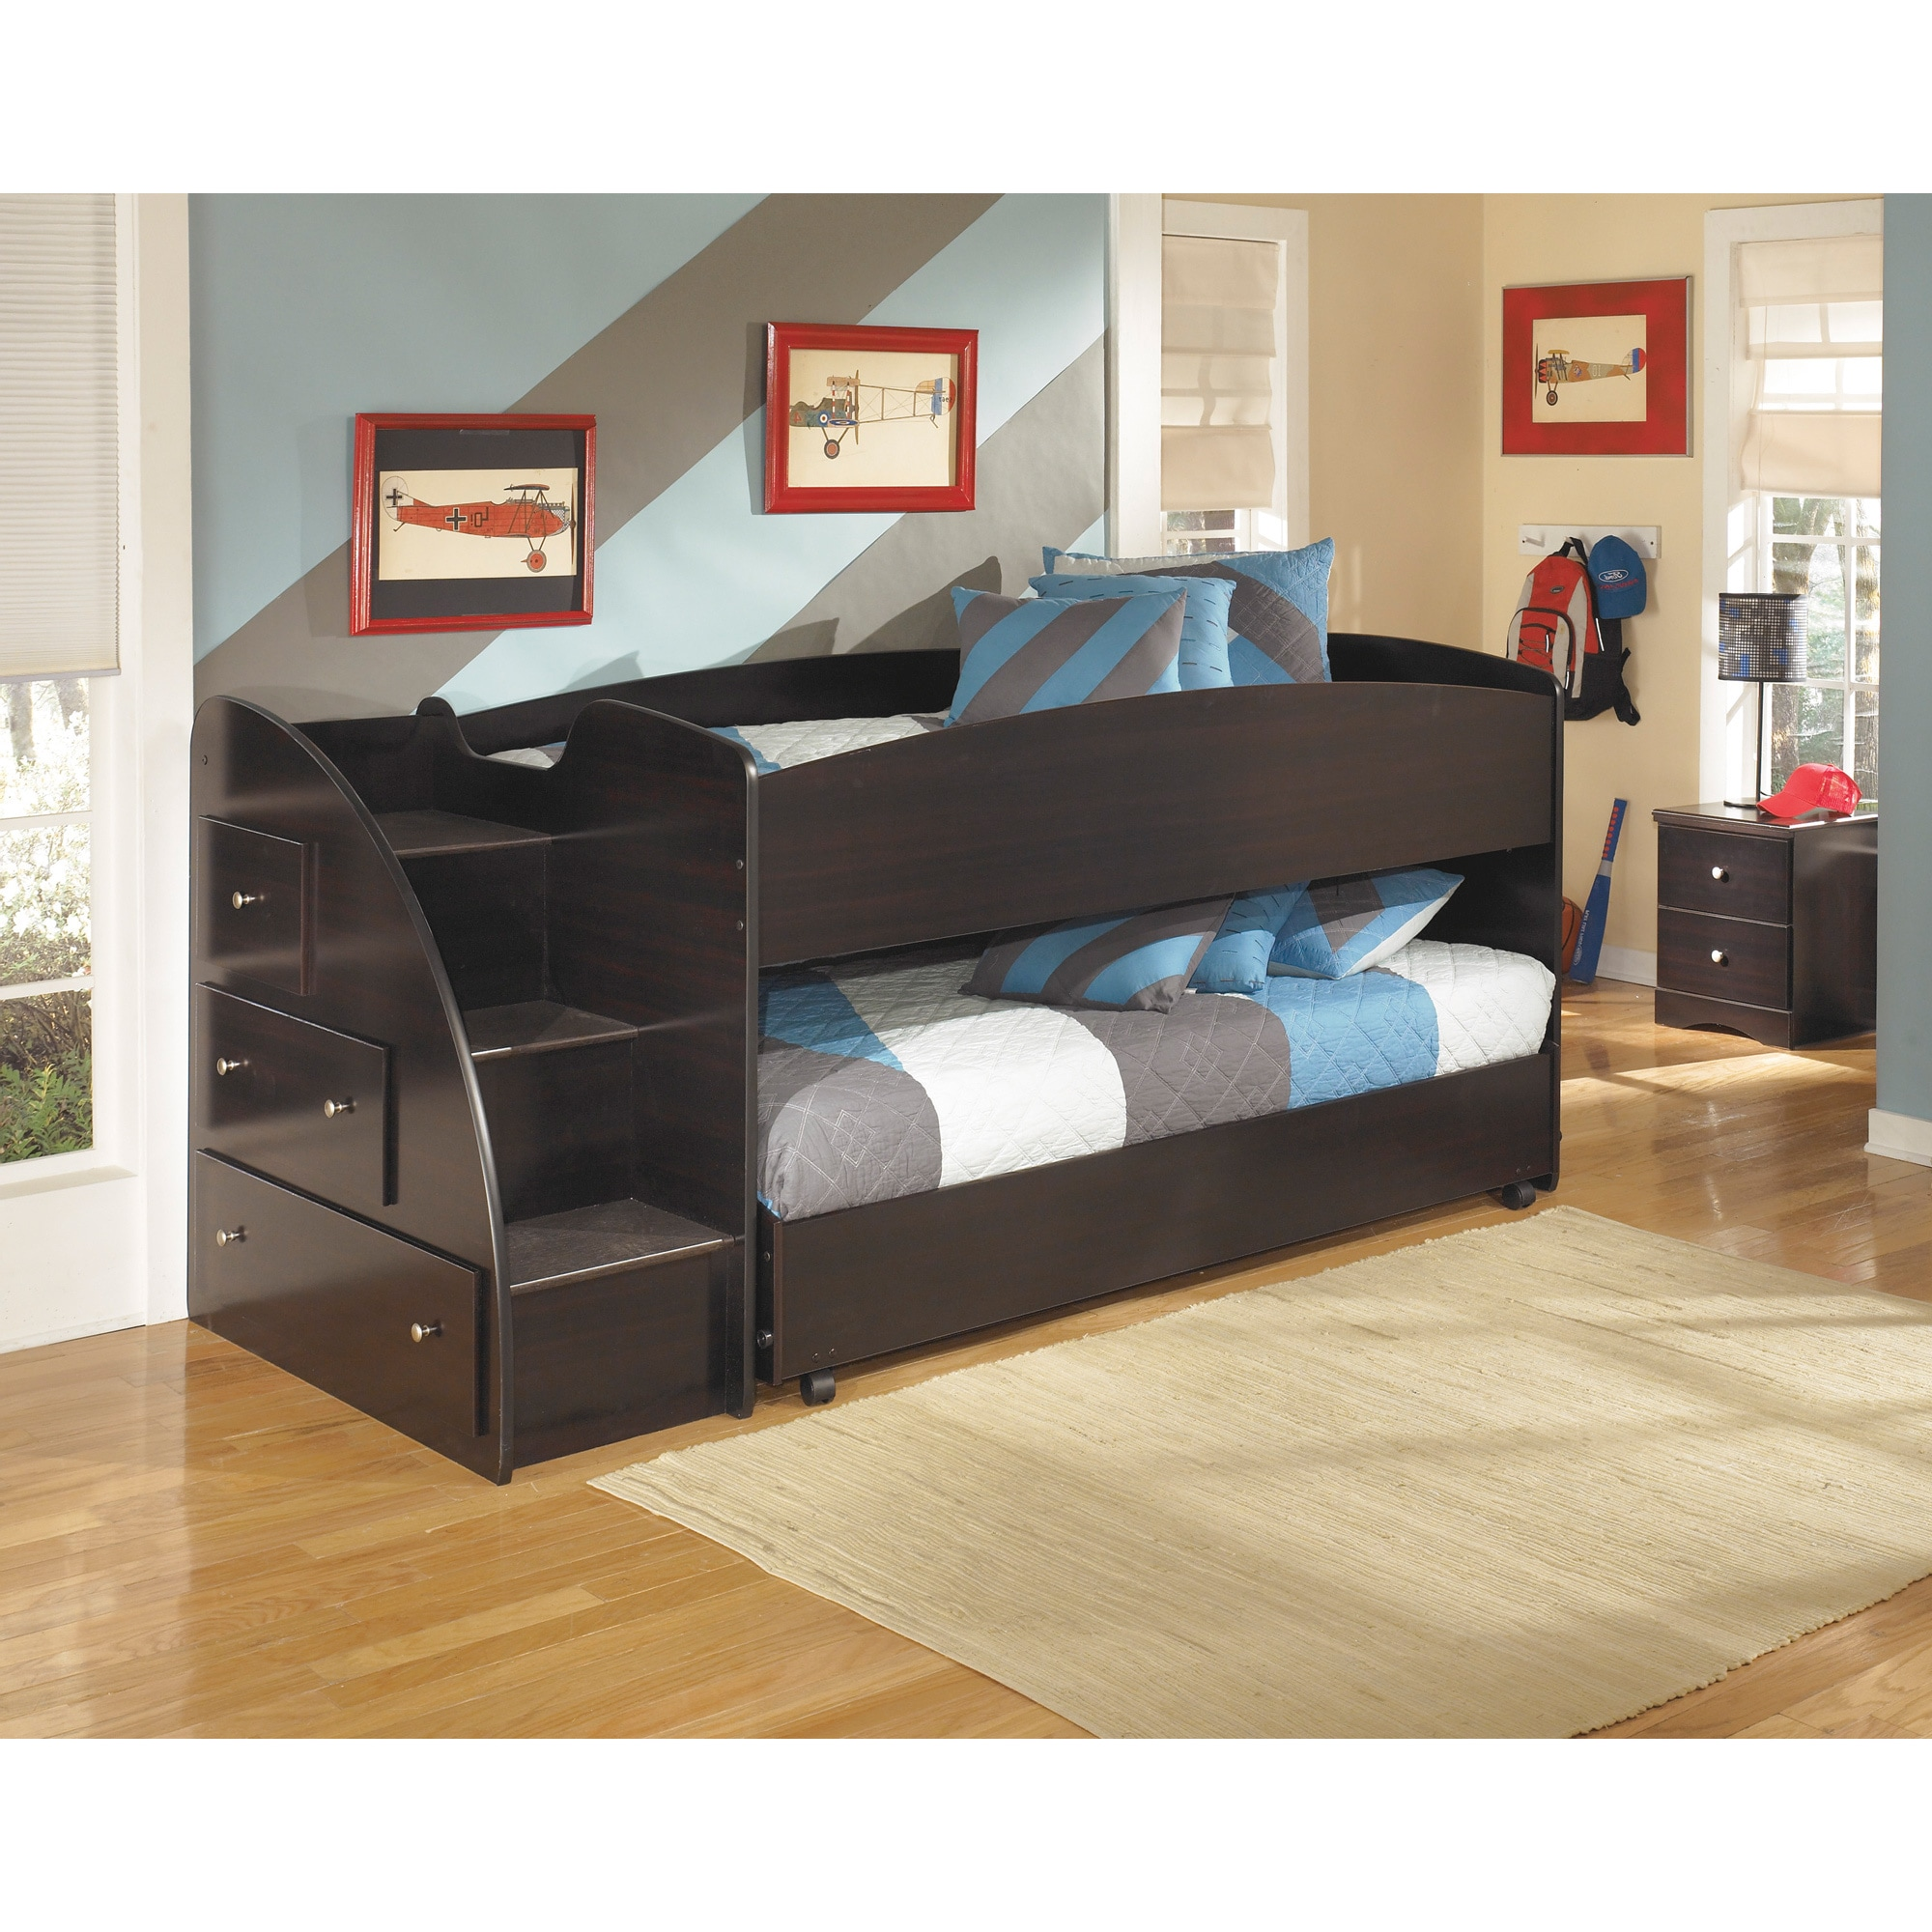 Embrace Loft Bed Set with Loft Caster Bed - Free Shipping Today ...